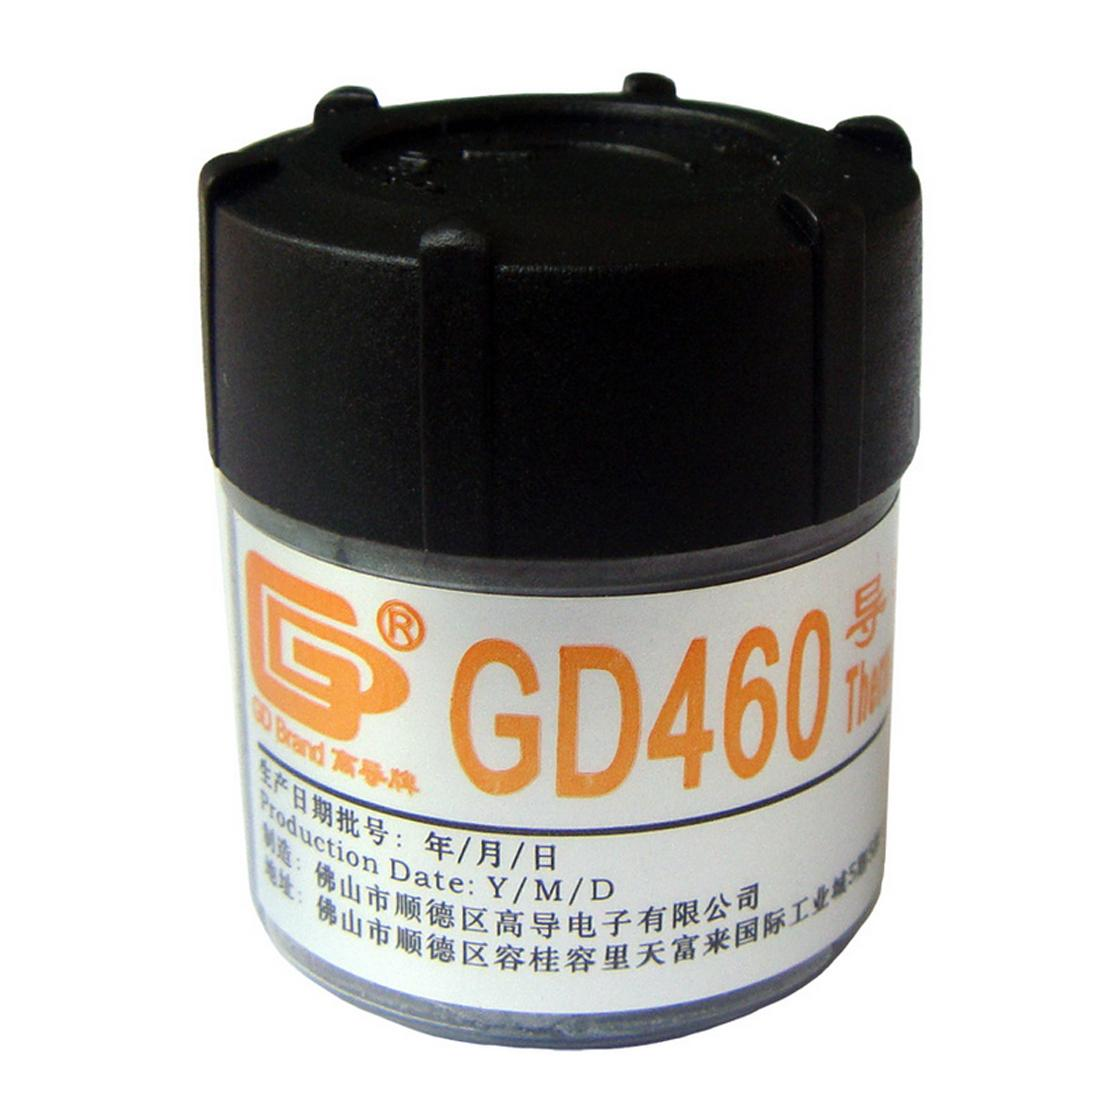 Cheap Fans & Cooling NOYOKERE Thermal Conductive Grease Paste Silicone GD460 Heatsink Compound Net Weight 20 Grams For CPU processor